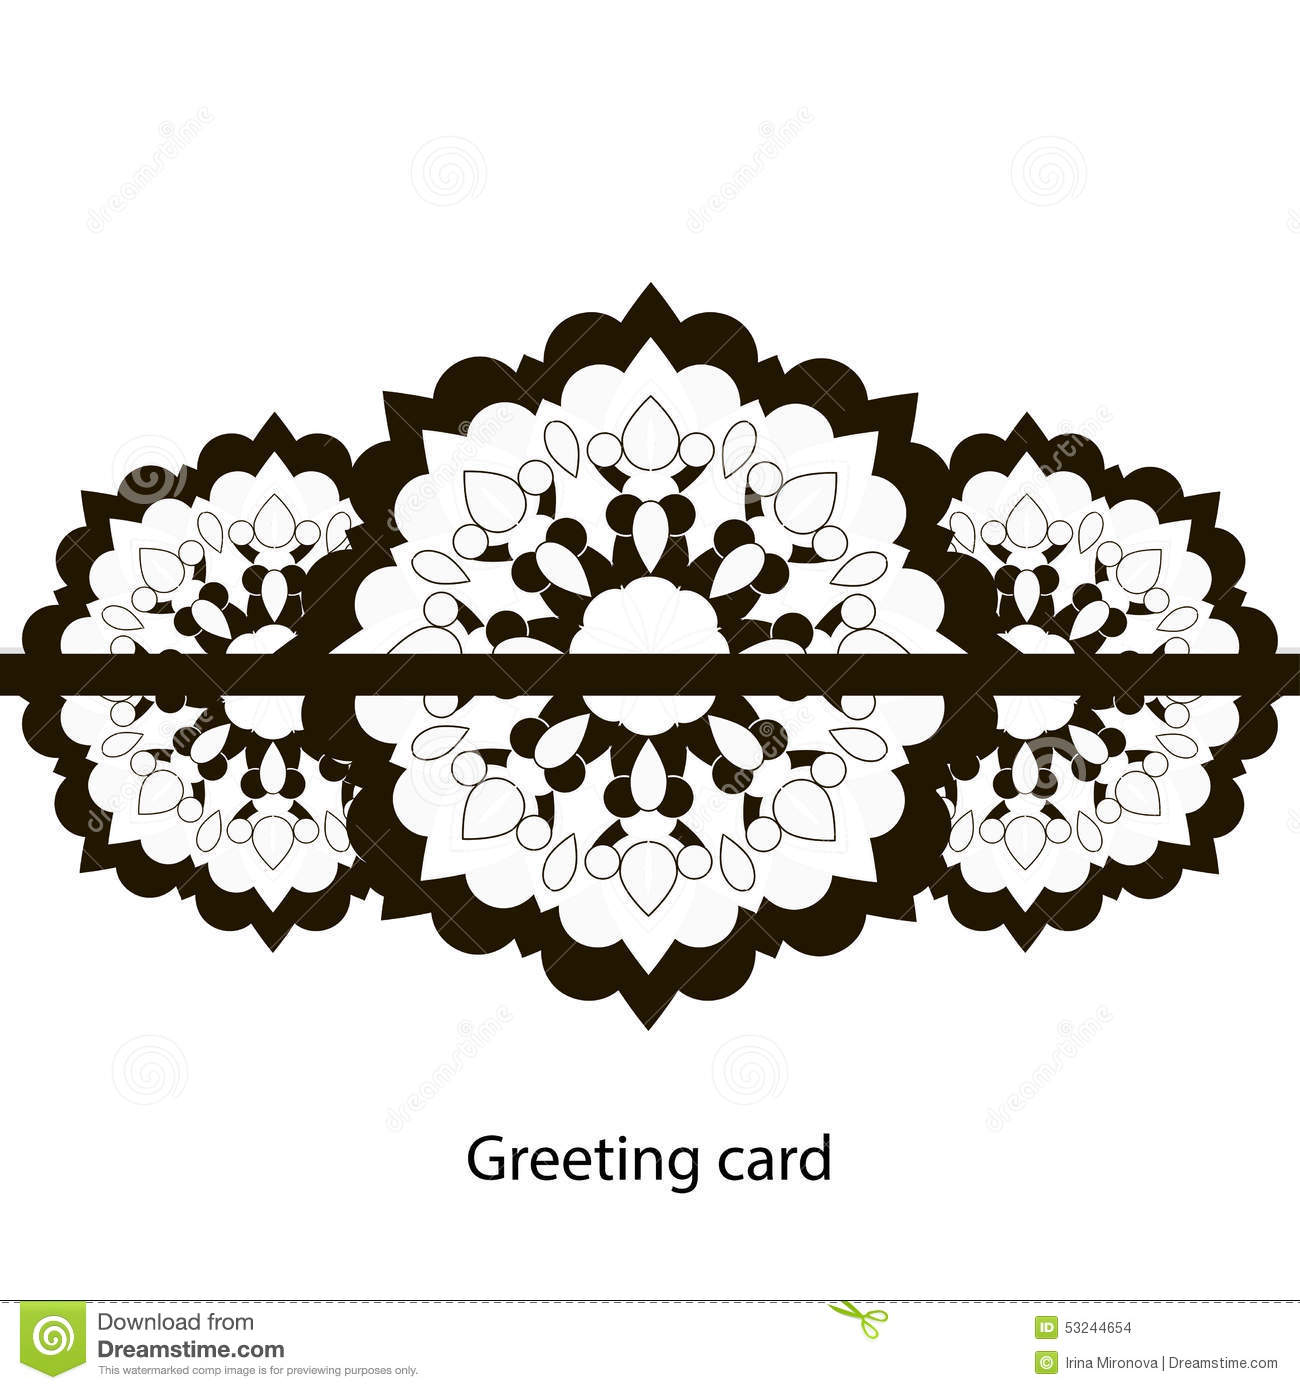 Greeting card black and white stock vector image